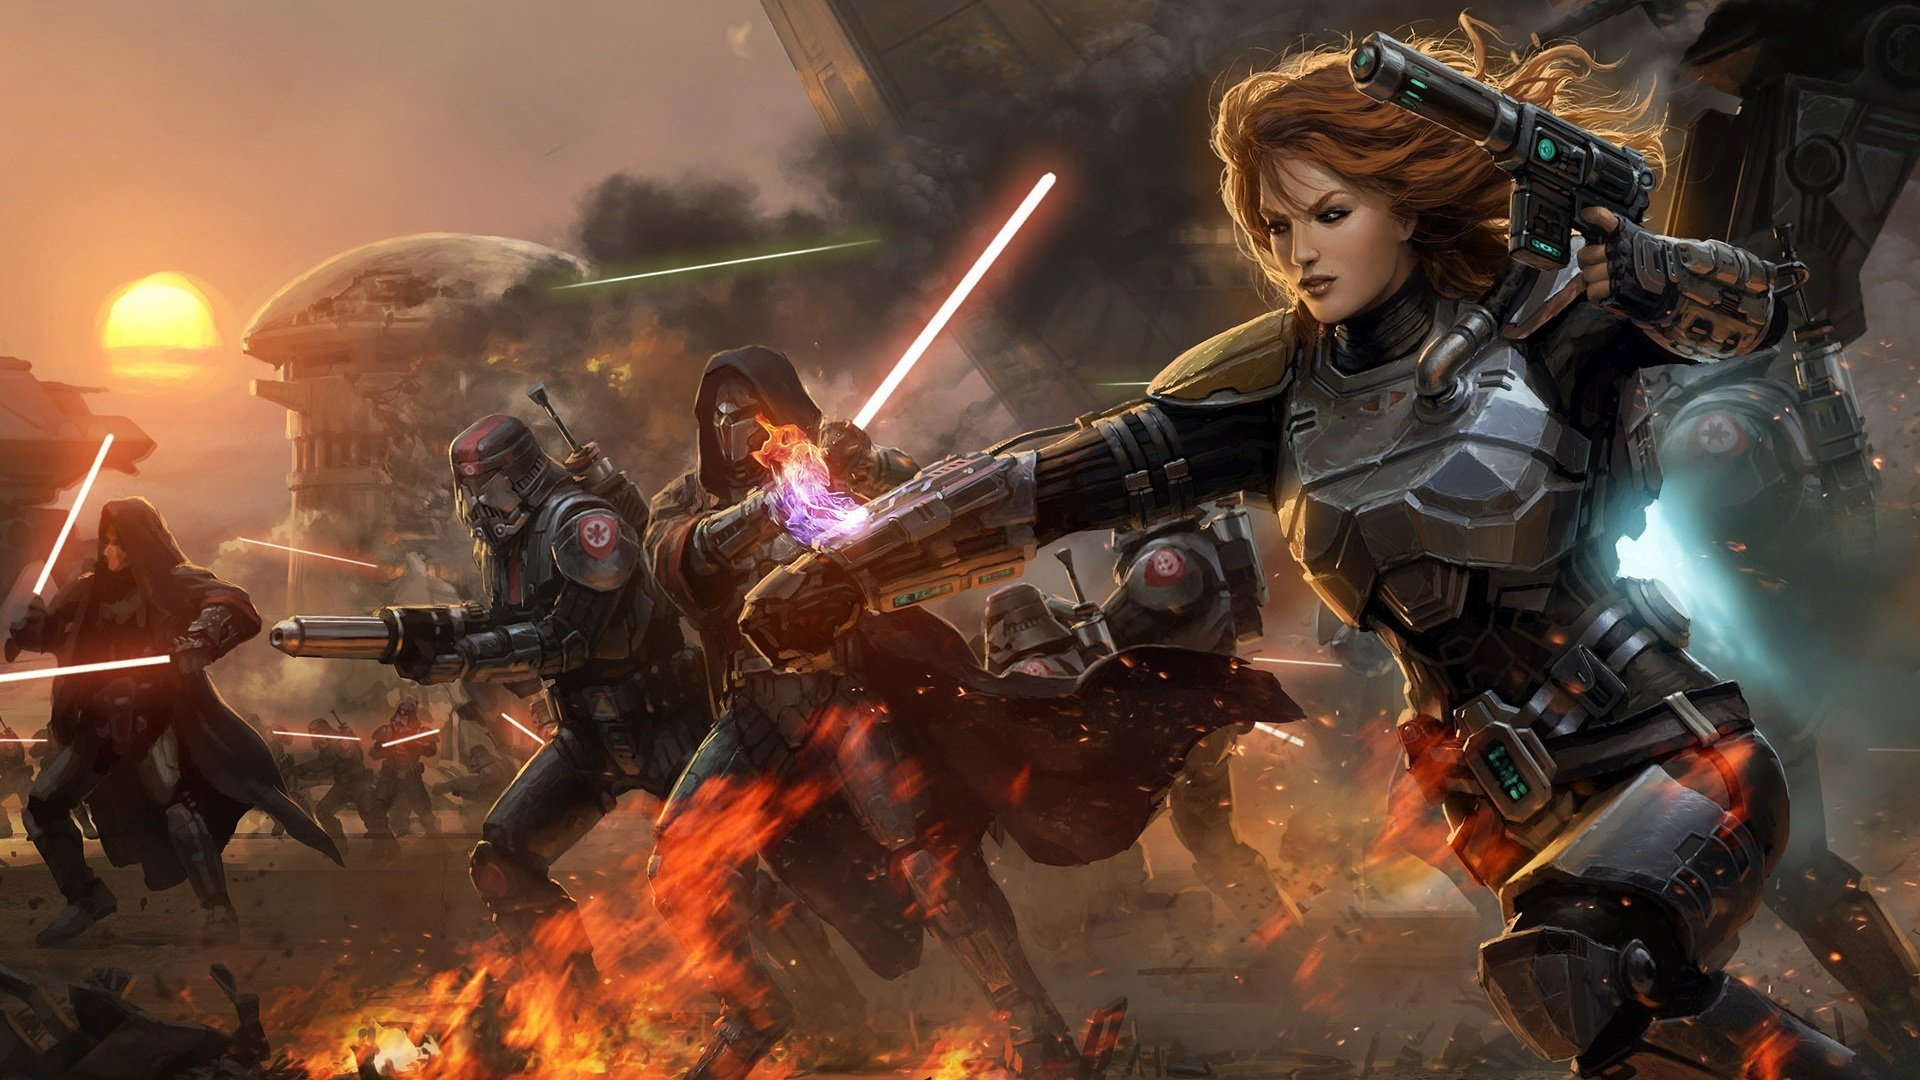 Star Wars The Old Republic Backgrounds HD 1920x1080